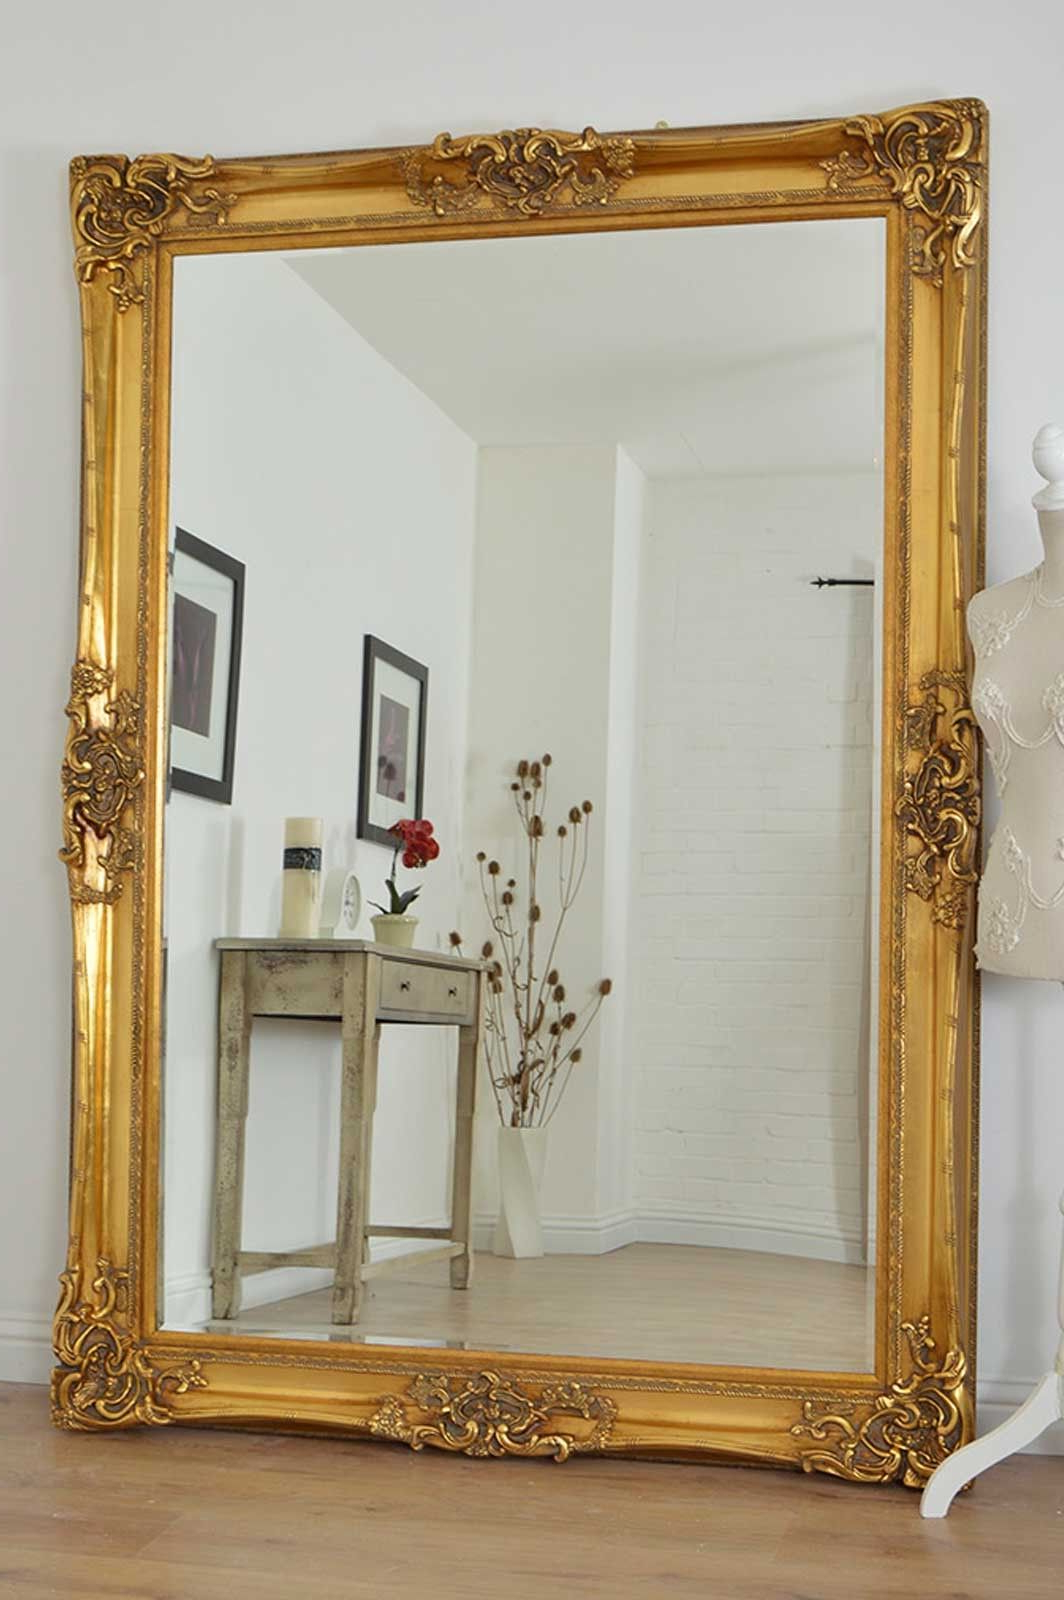 Large Antique Wall Mirrors Inside Most Recently Released Large Gold Very Ornate Antique Design Wall Mirror 7Ft X 5Ft (213Cm X (View 14 of 20)